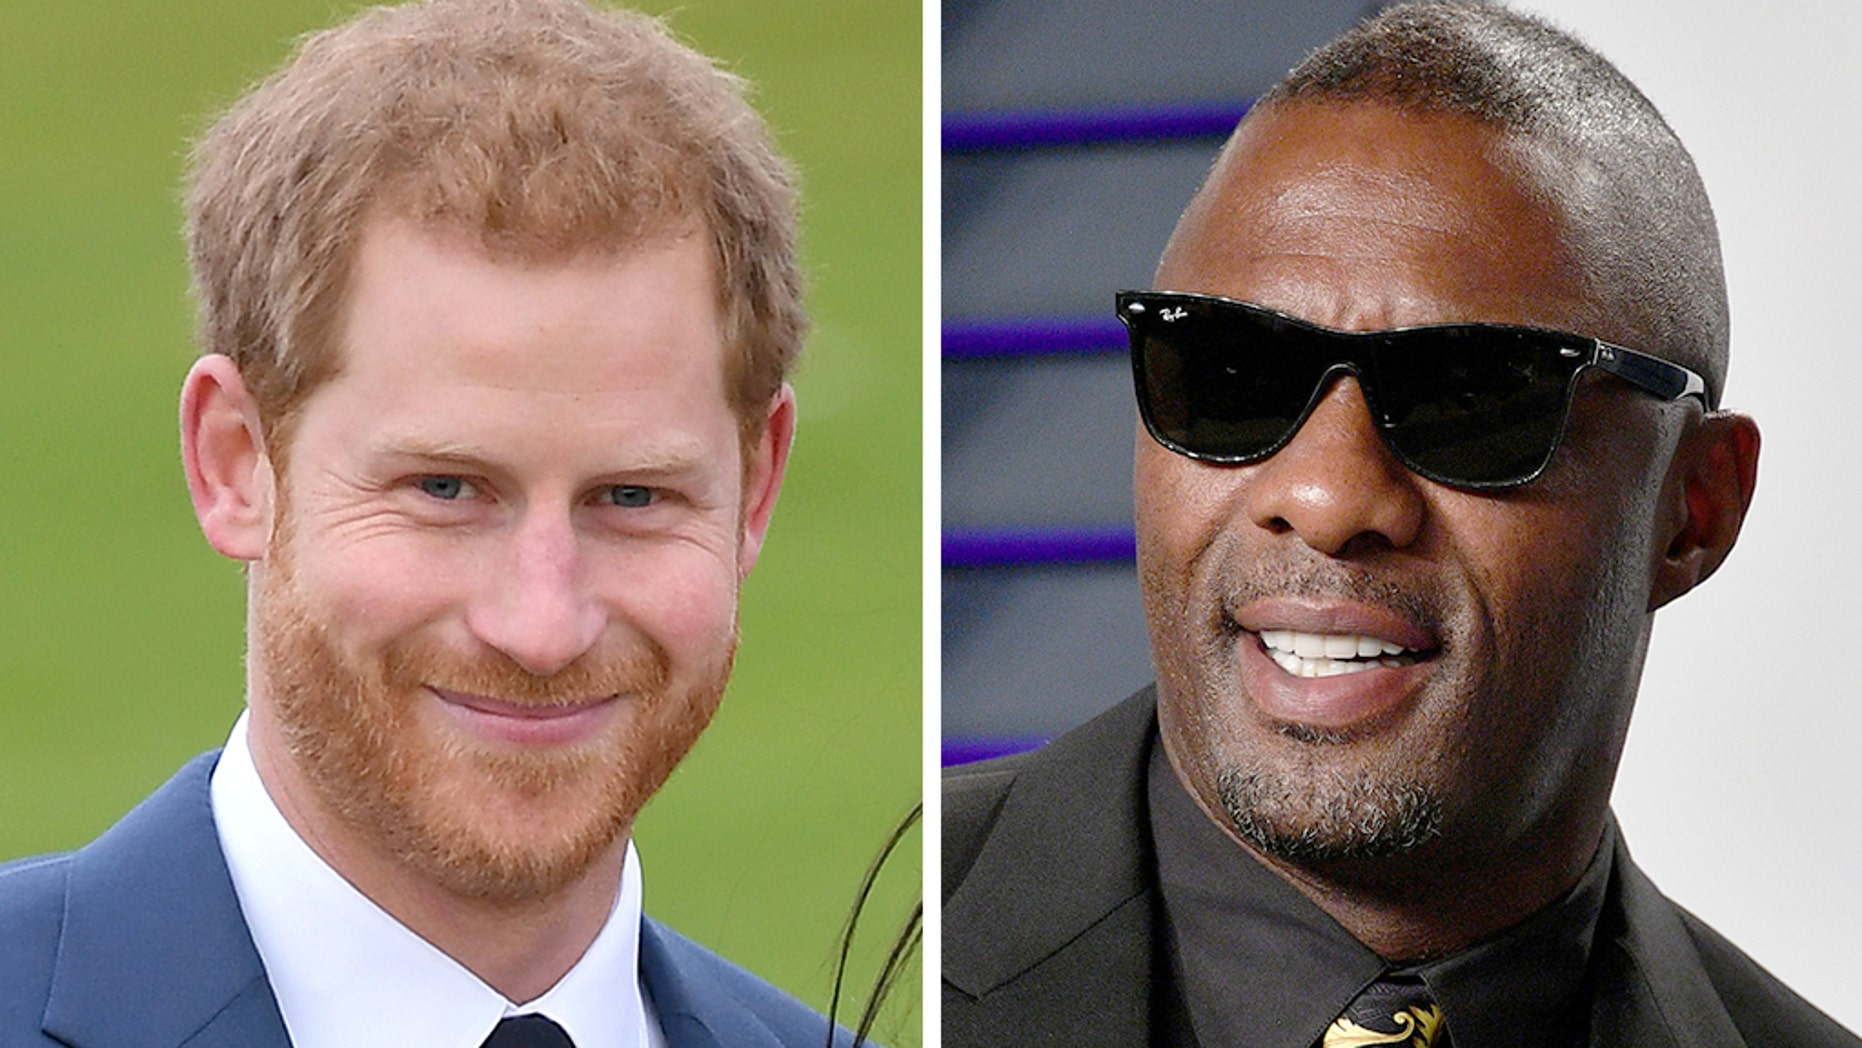 Actor and DJ Idris Elba, right, says Prince Harry casually asked him to man the turntables at the royal wedding.